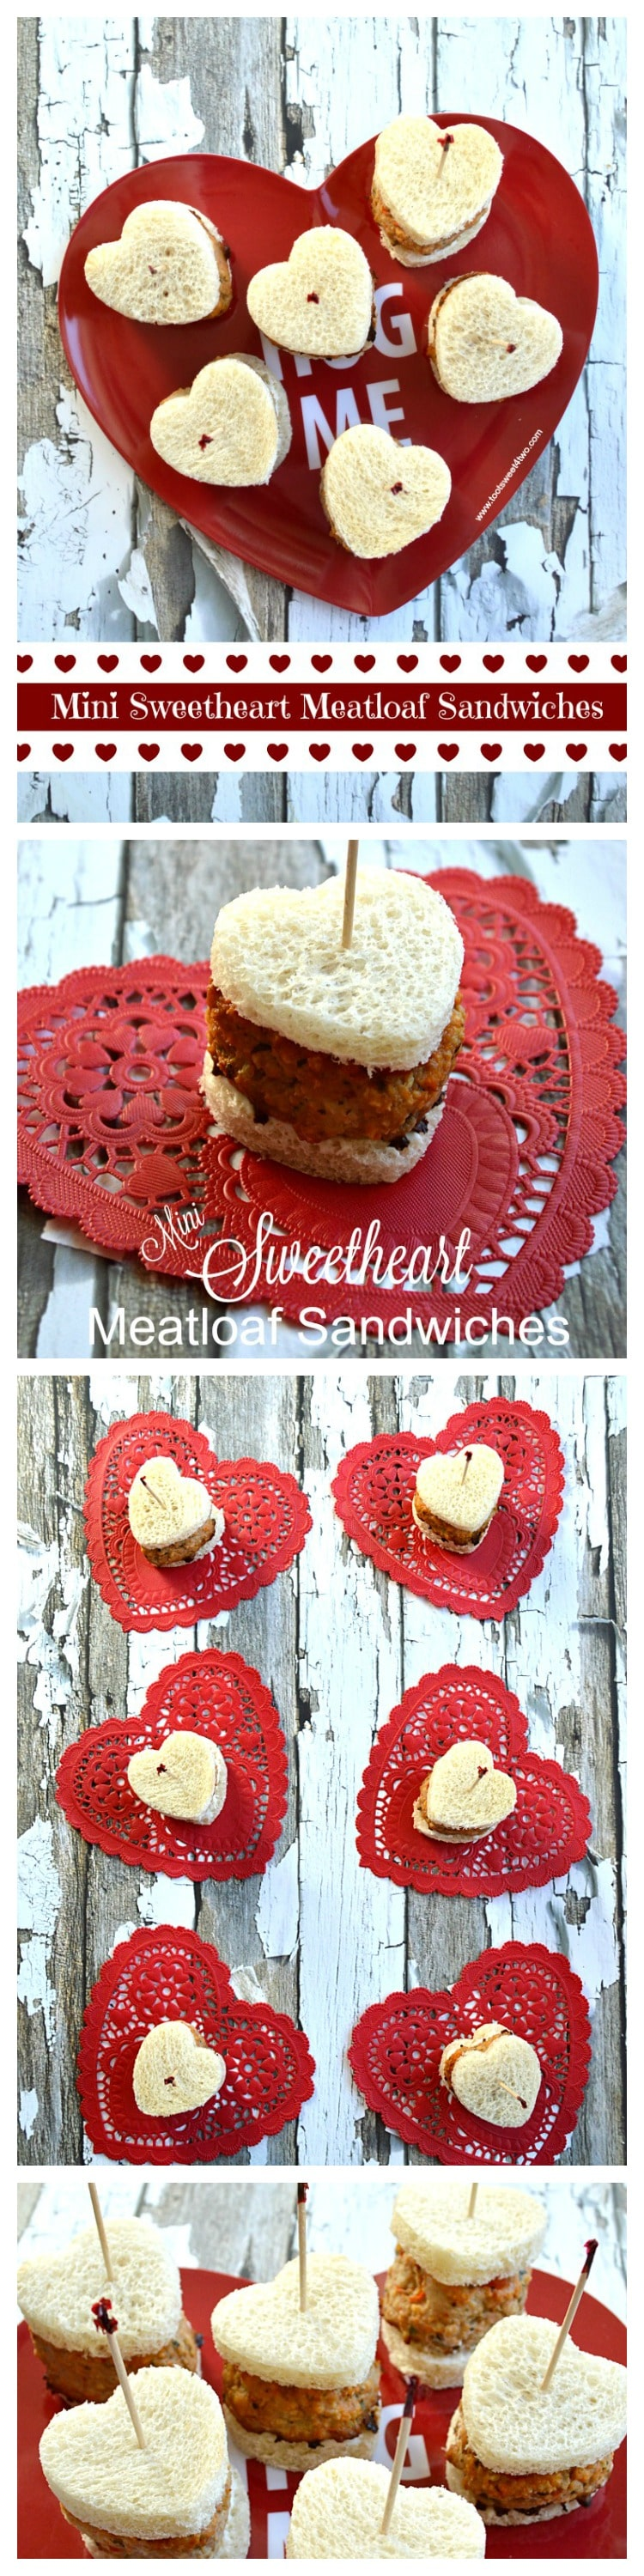 Mini Sweetheart Meatloaf Sandwiches collage